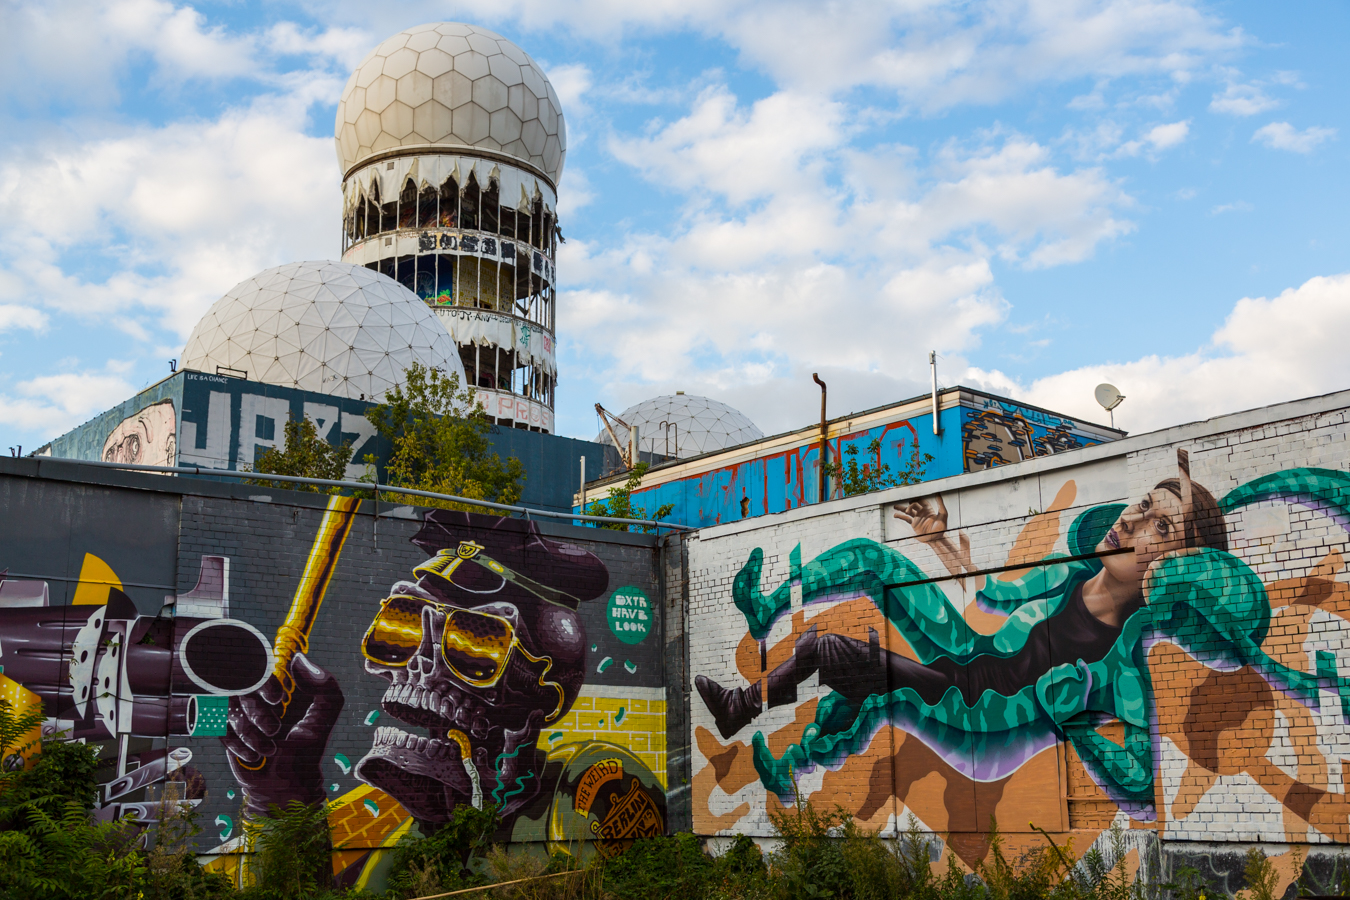 teufelsberg artworks heavenly creations on devil s mountain abandoned berlin. Black Bedroom Furniture Sets. Home Design Ideas